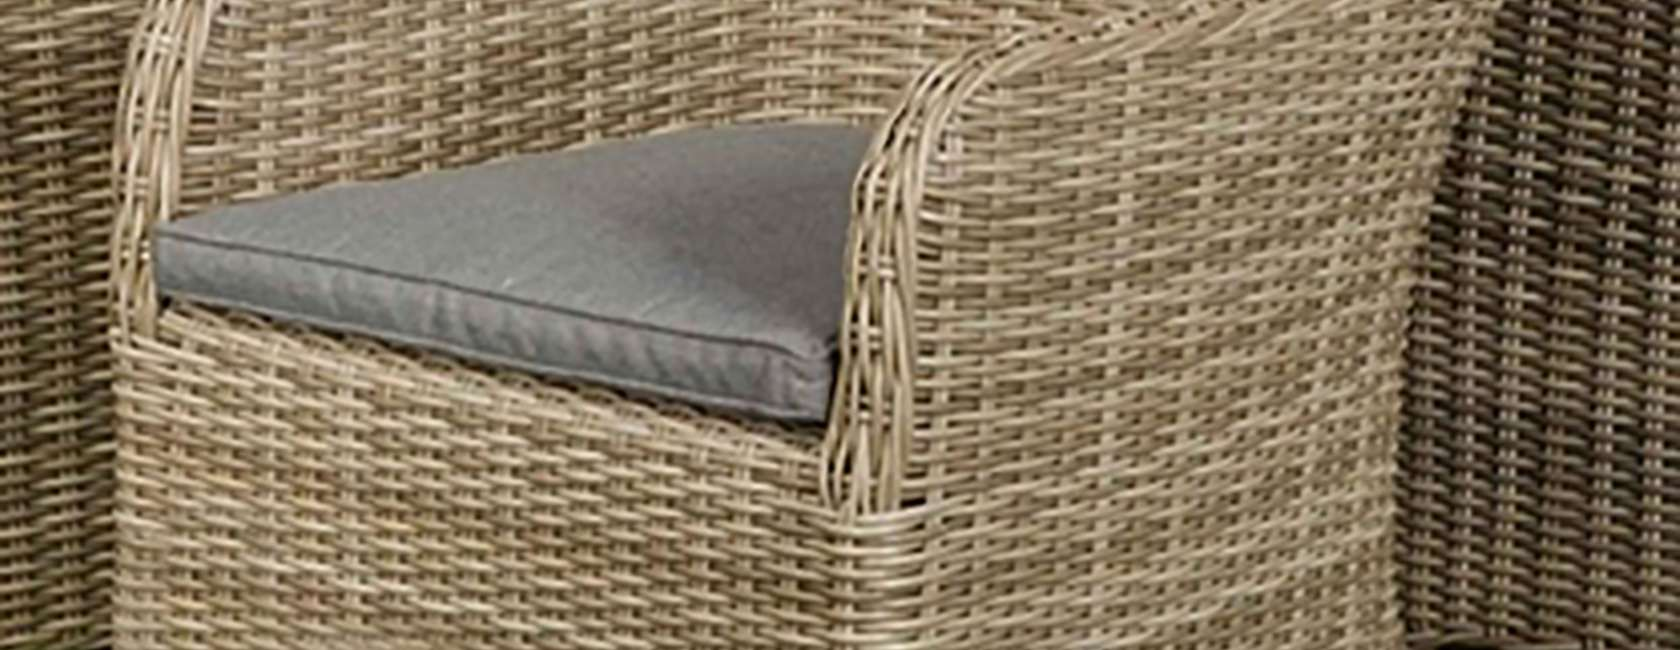 Royalcraft Wentworth Outdoor Furniture at John Lewis & Partners